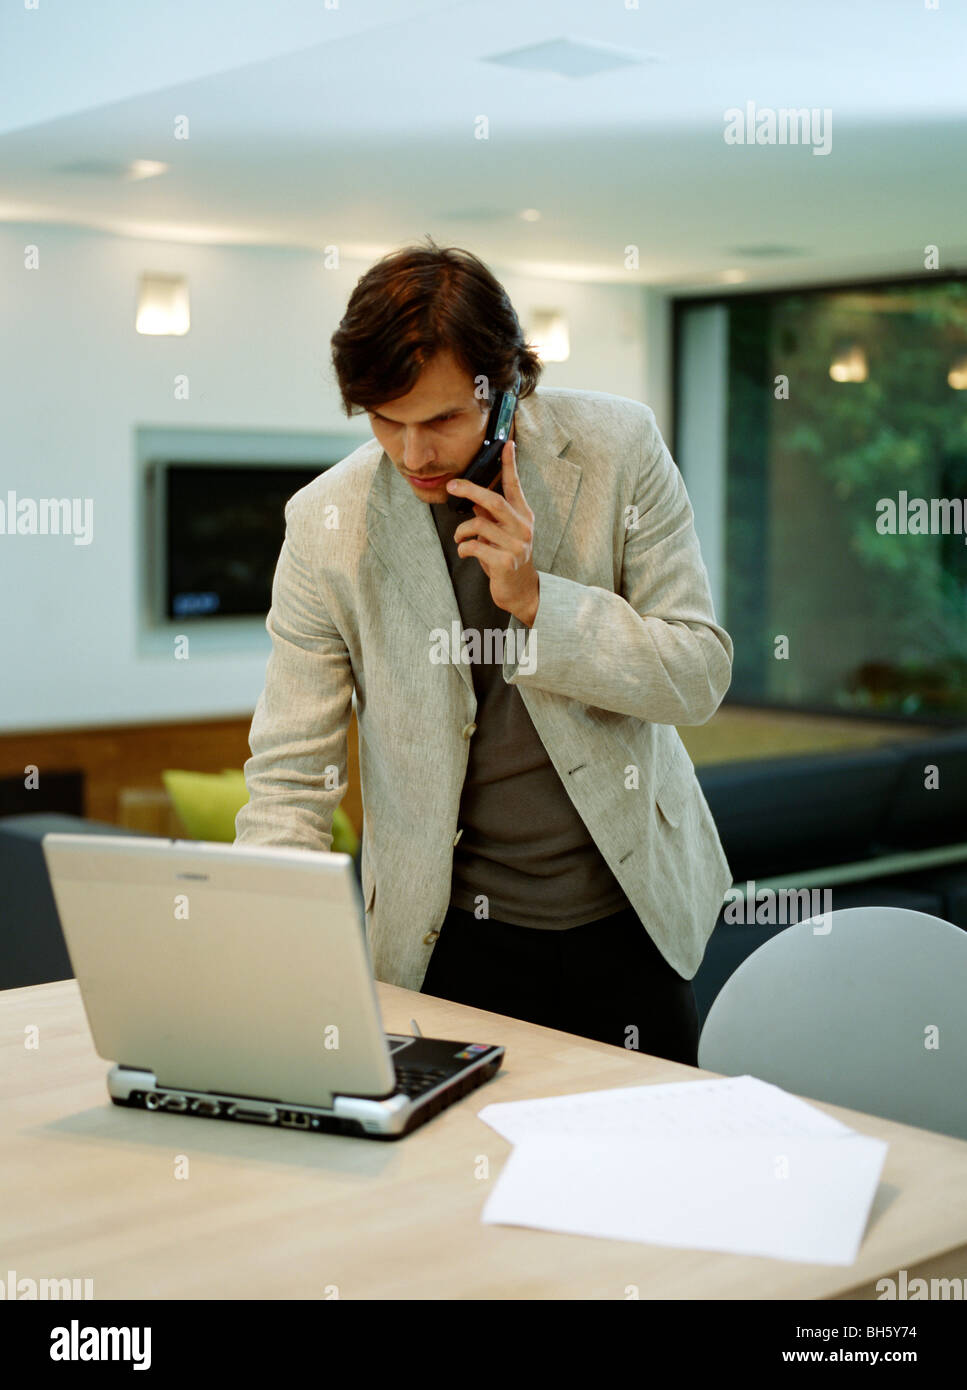 A young trendy male works from home - Stock Image